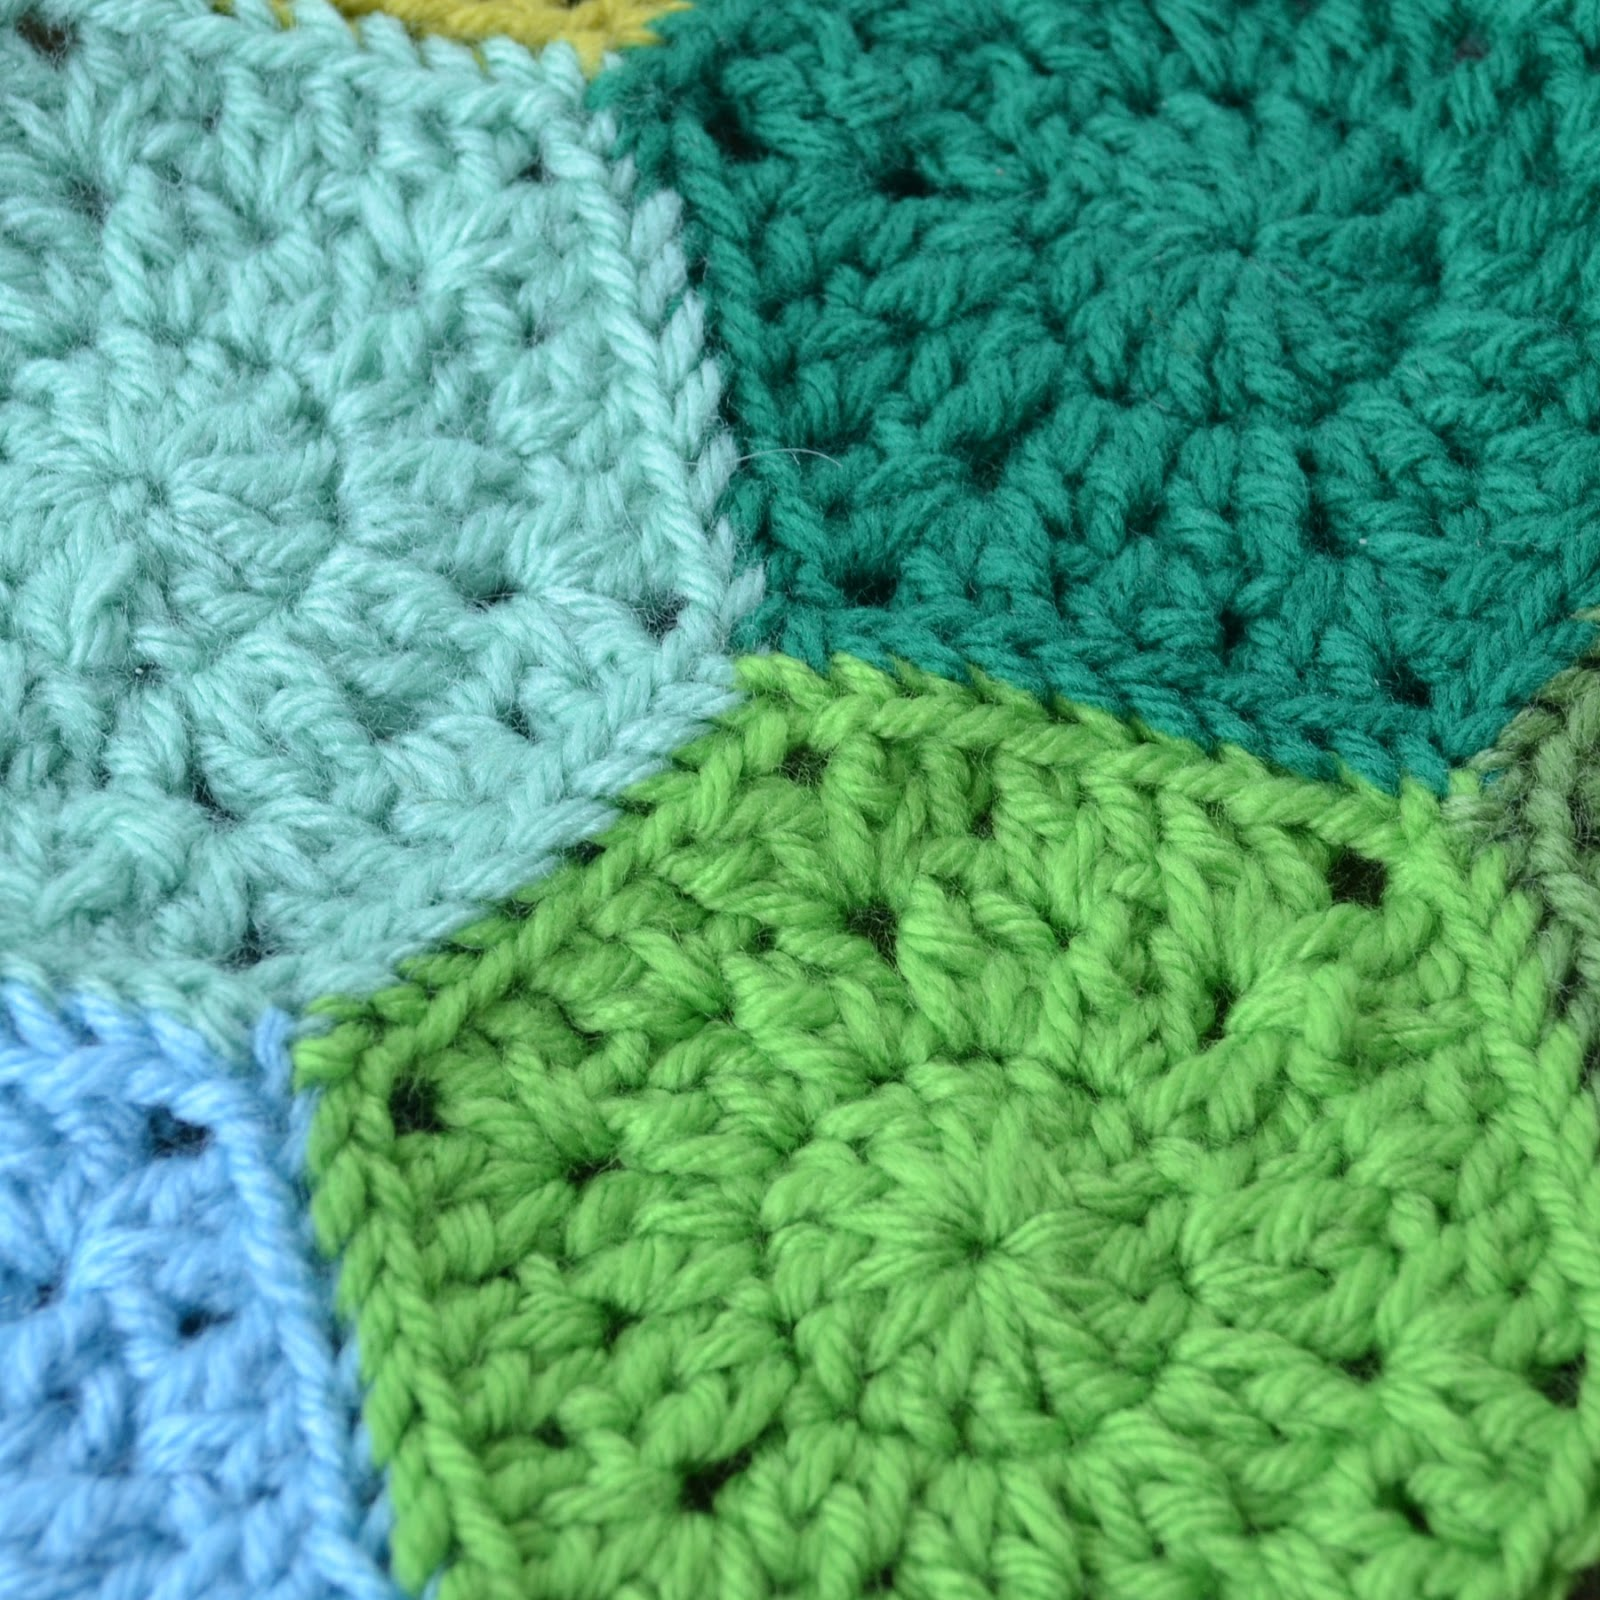 Crocheting Hexagons : Crochet in Color: Hexagon Pattern